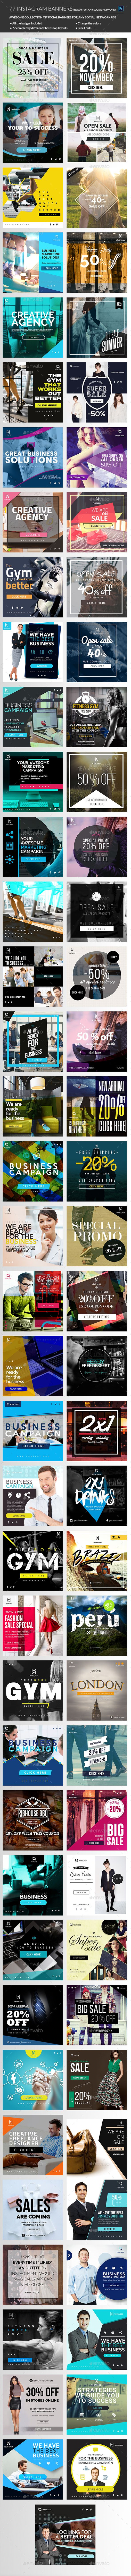 Instagram Promotional Banners - Over 70 Instagram banners for all promotions or…